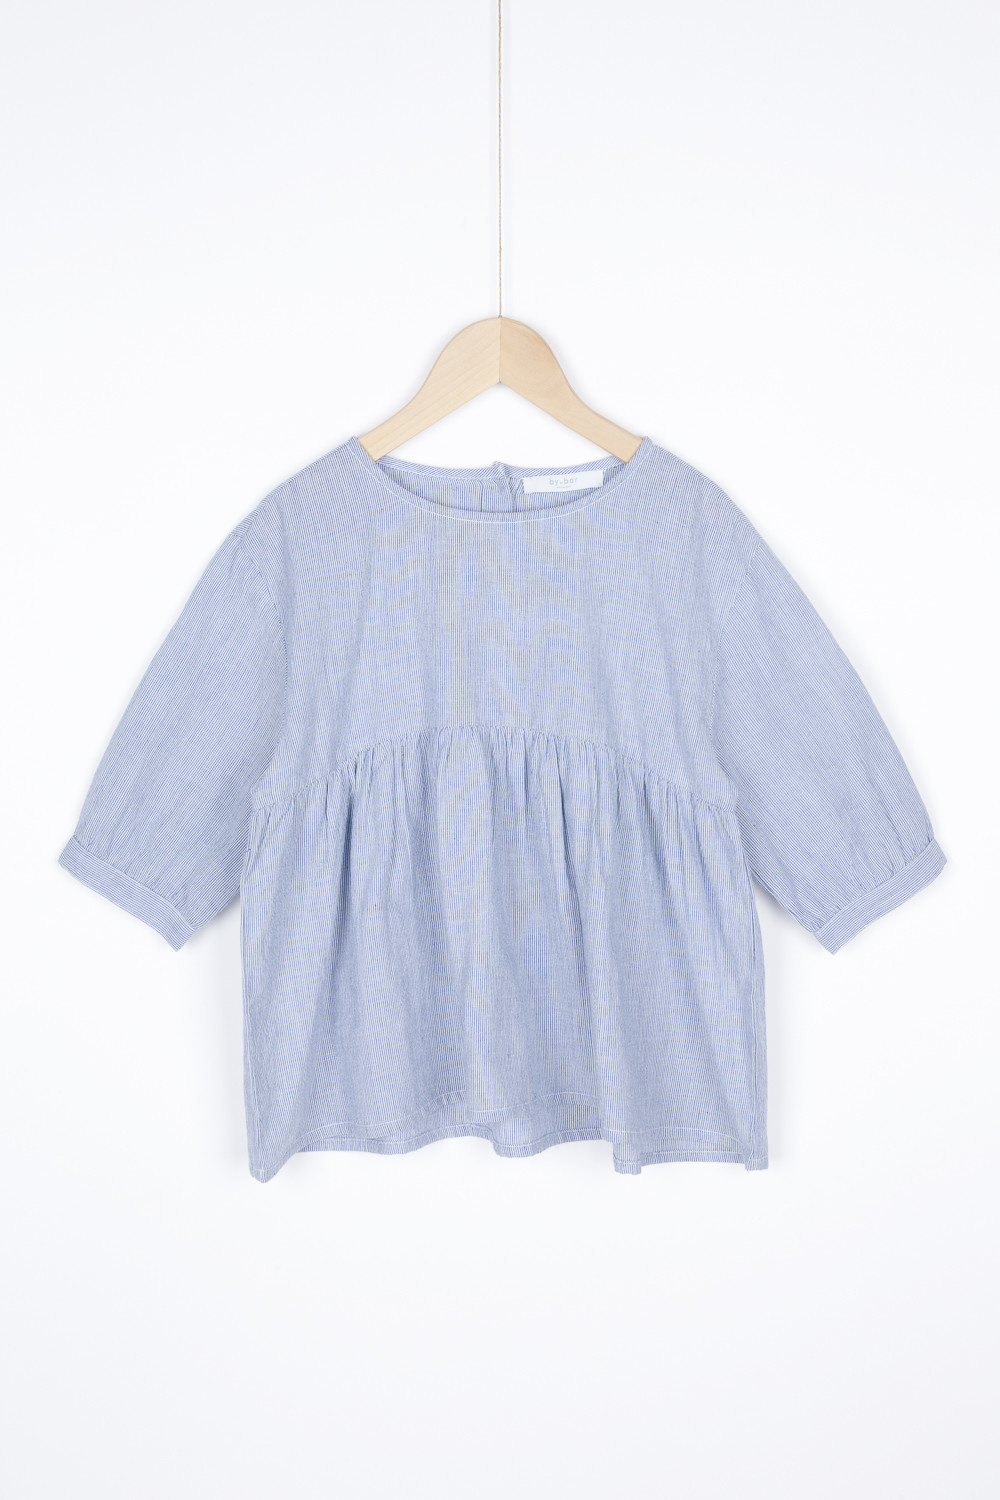 By-Bar Bybar - Renee Blouse Blue